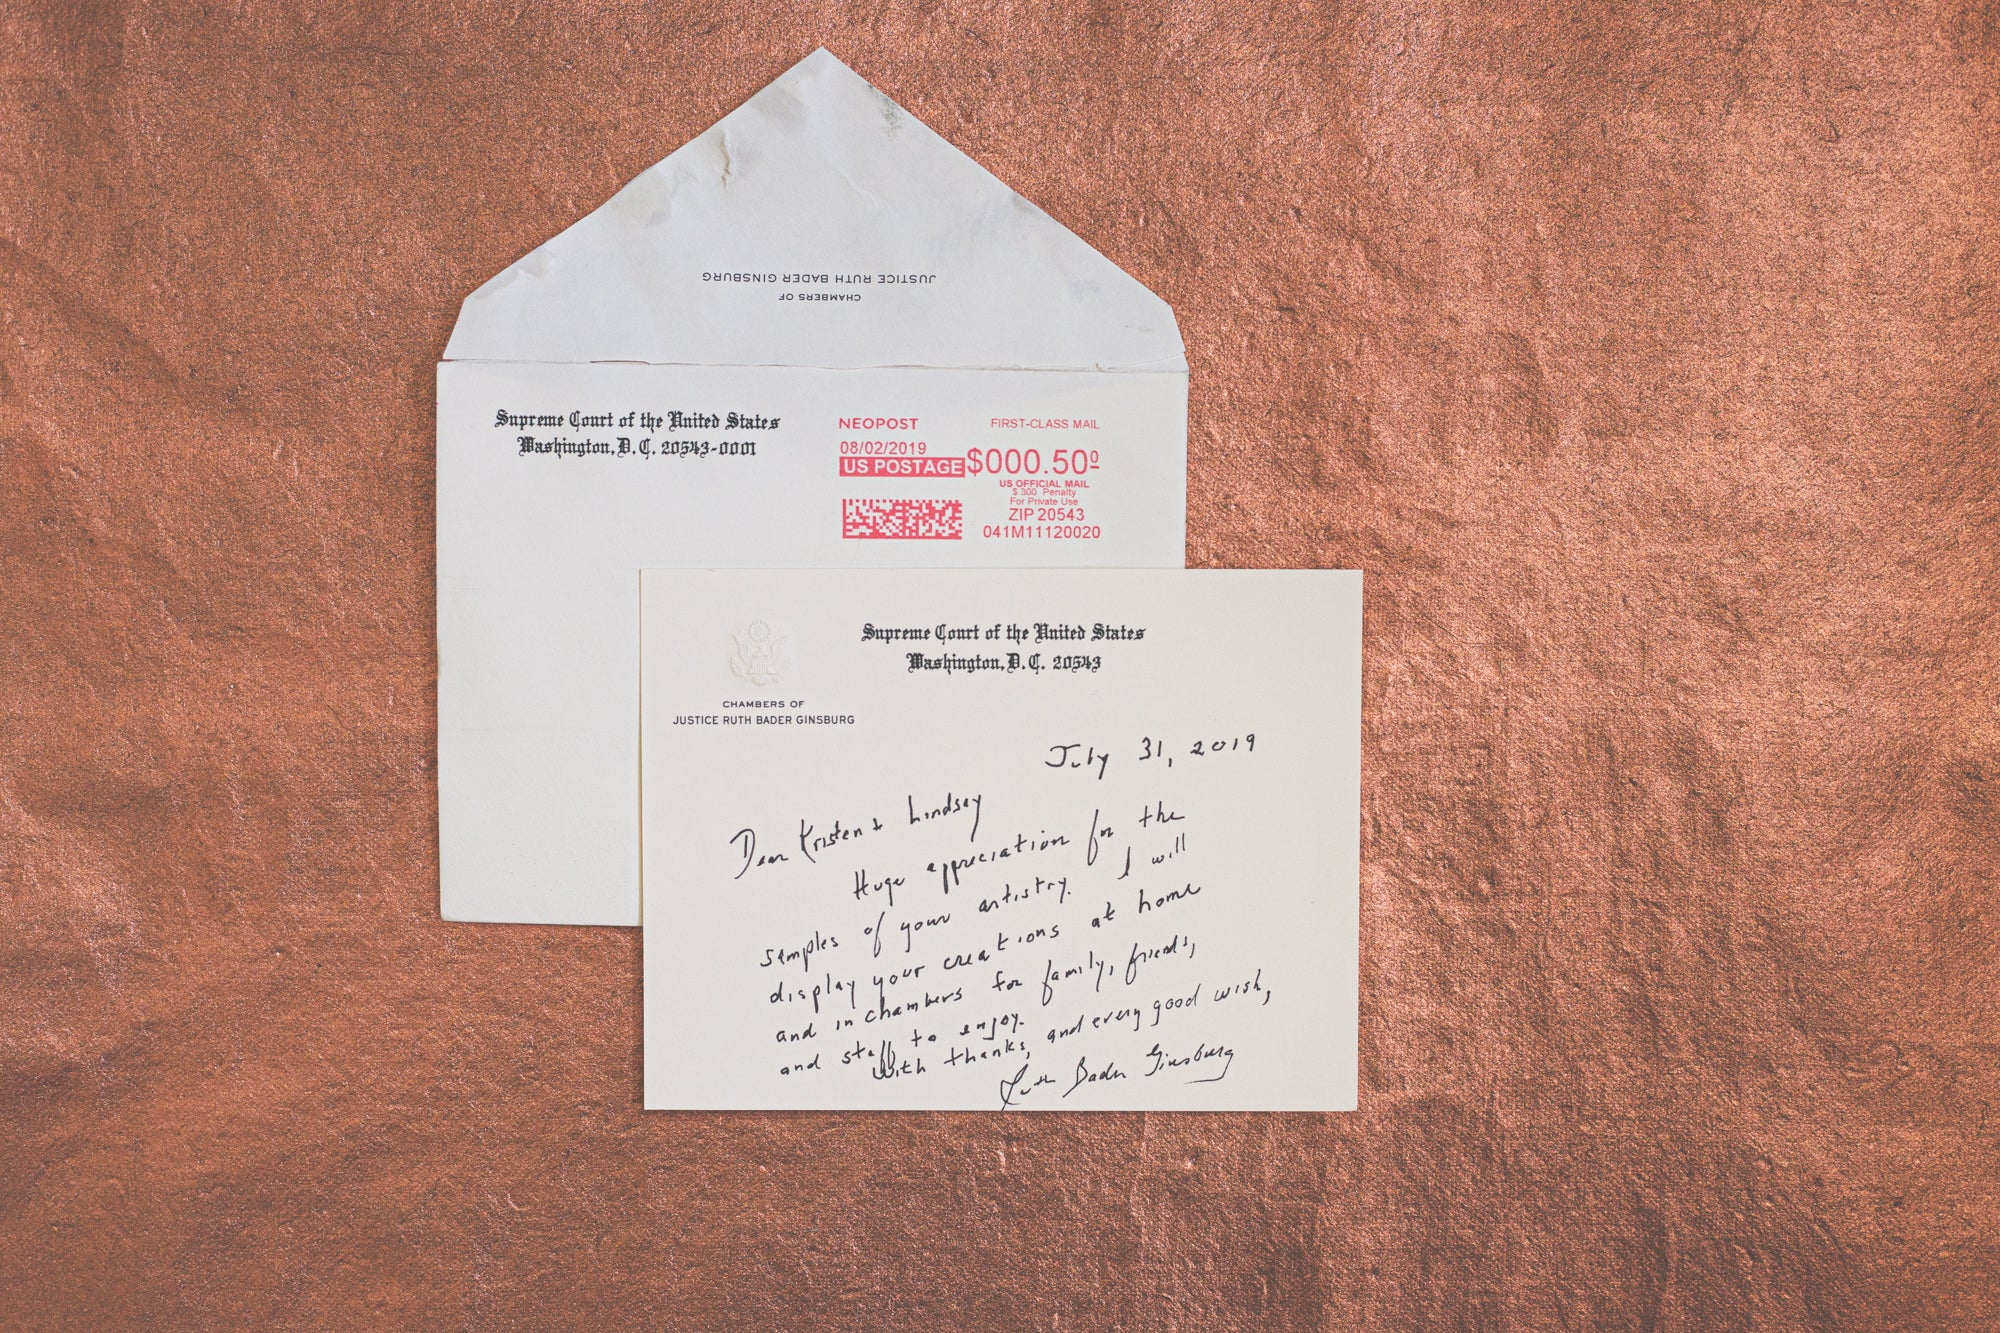 Supreme Court Justice Ruth Bader Ginsburg handwritten letter to Kristen and Lindsey Archer of ARCHd